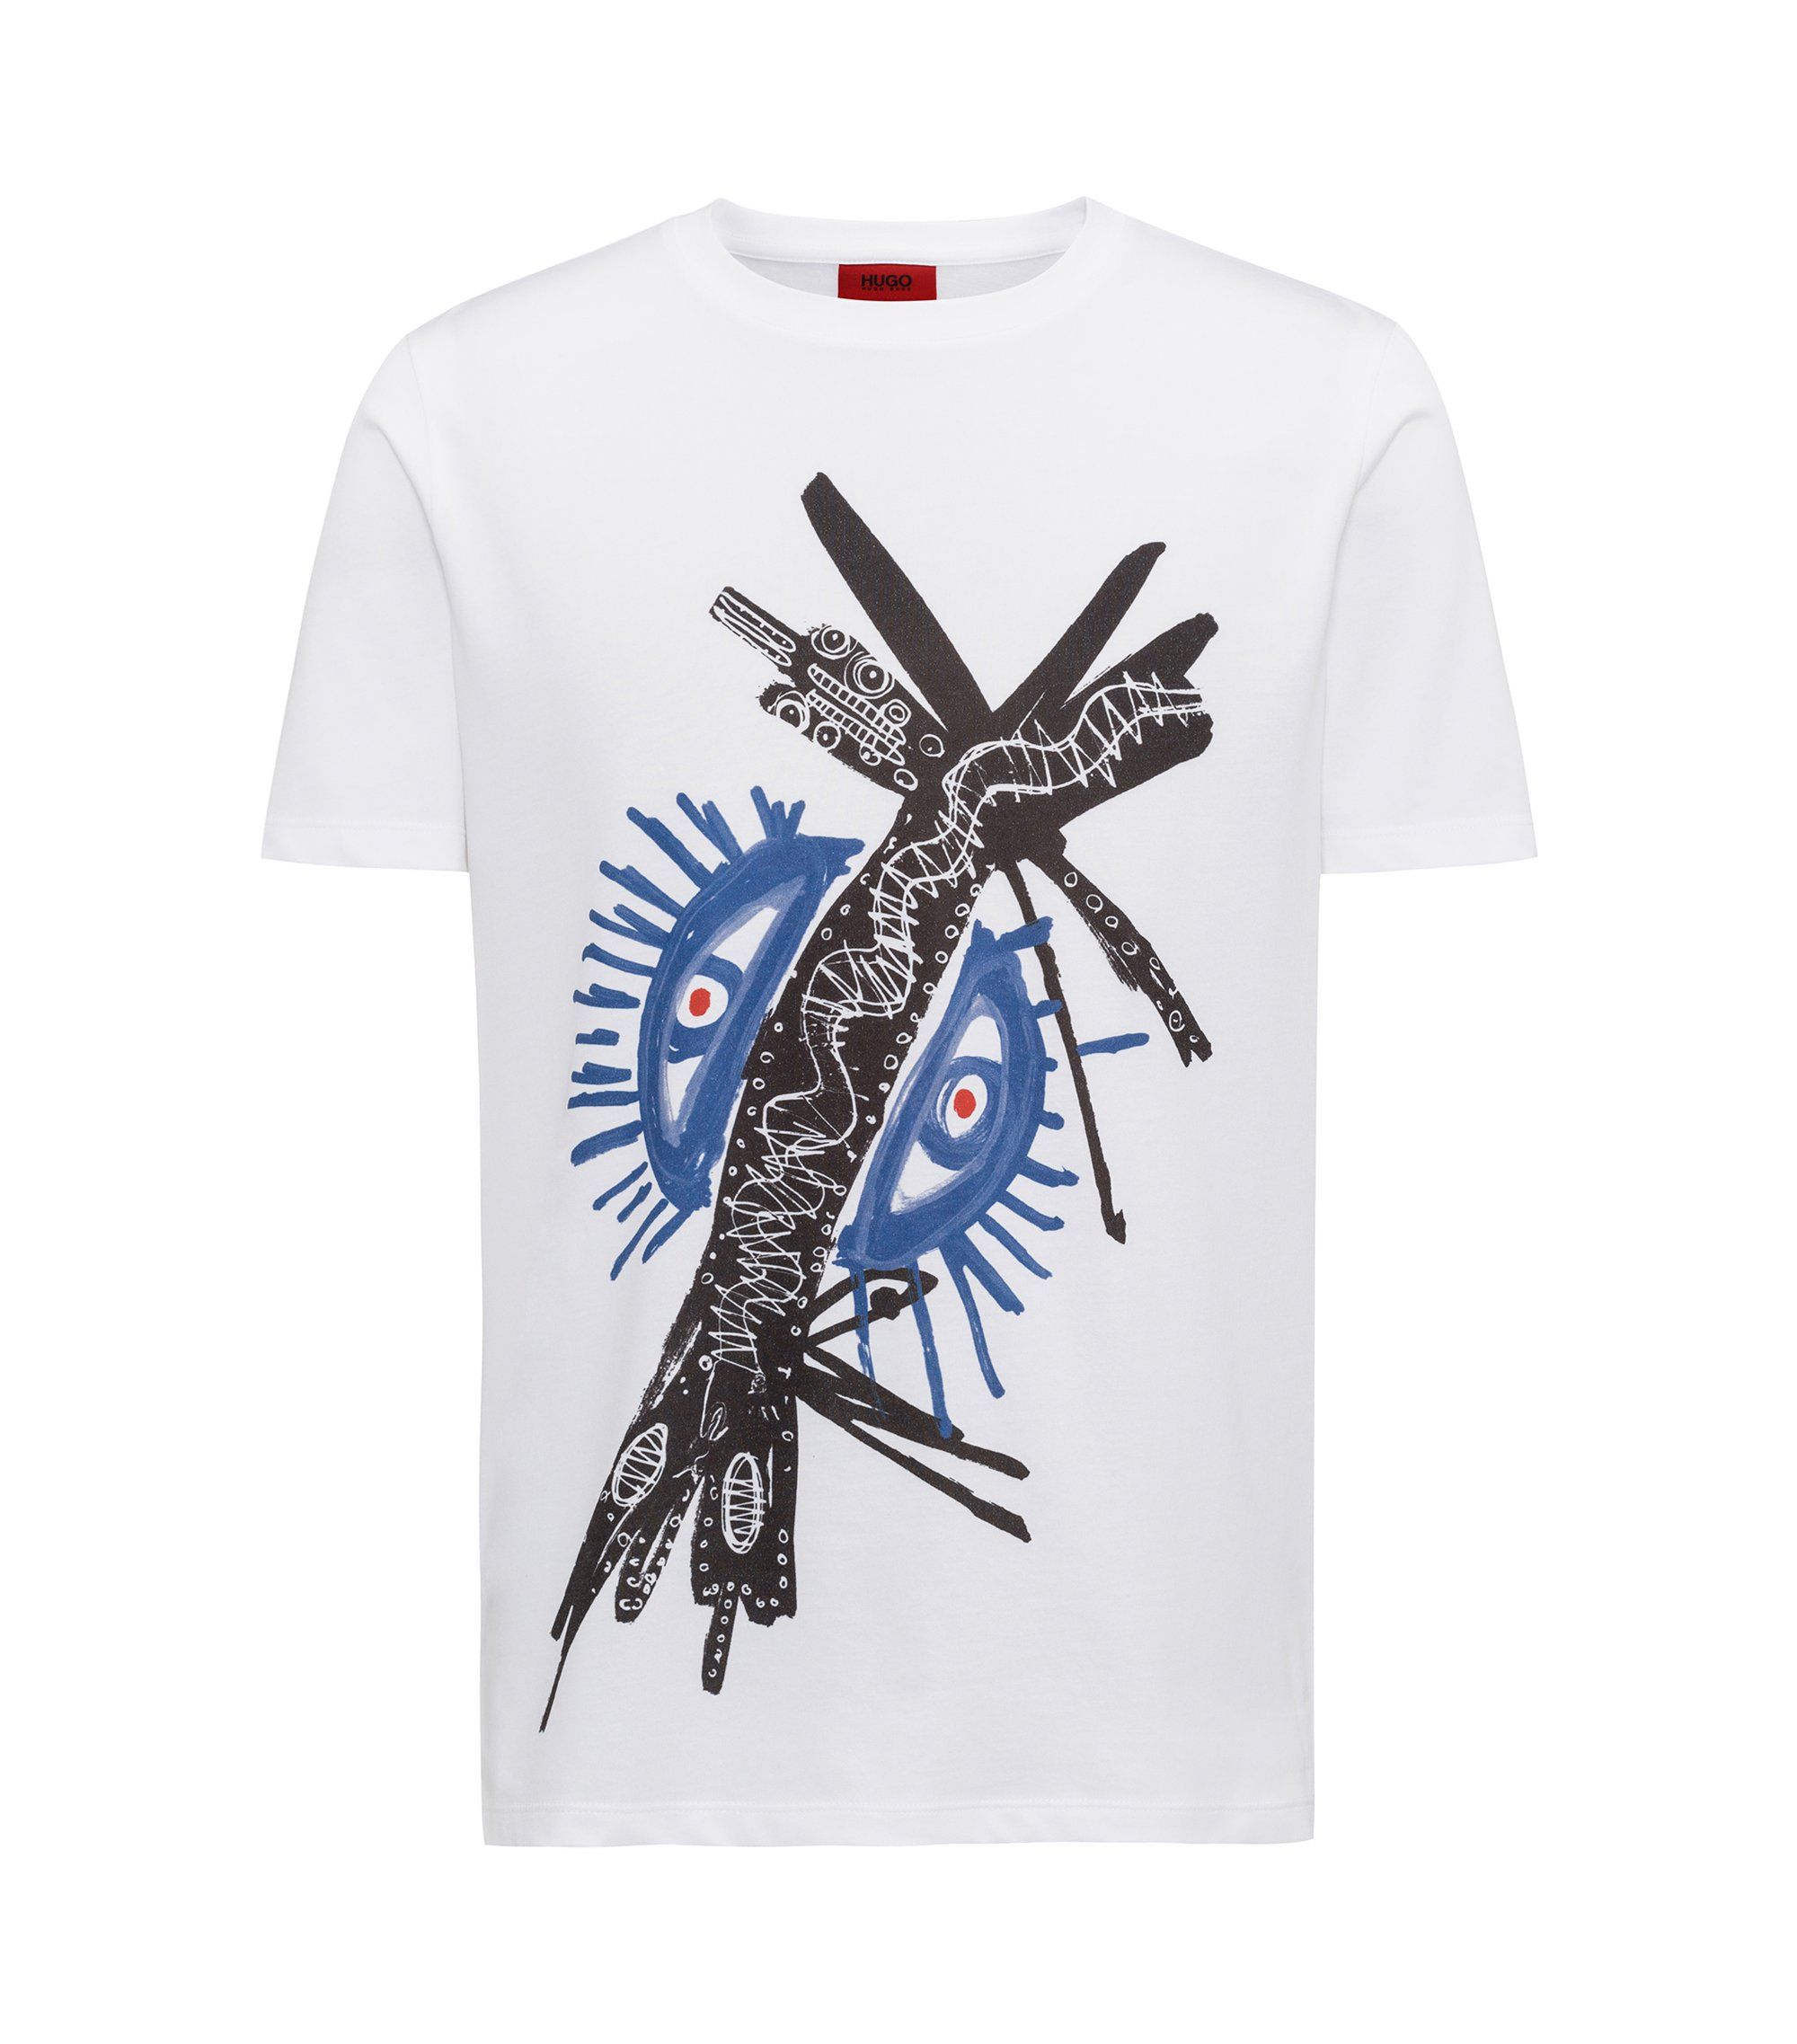 Cotton Blend Graphic Print T-Shirt | Dashy, White